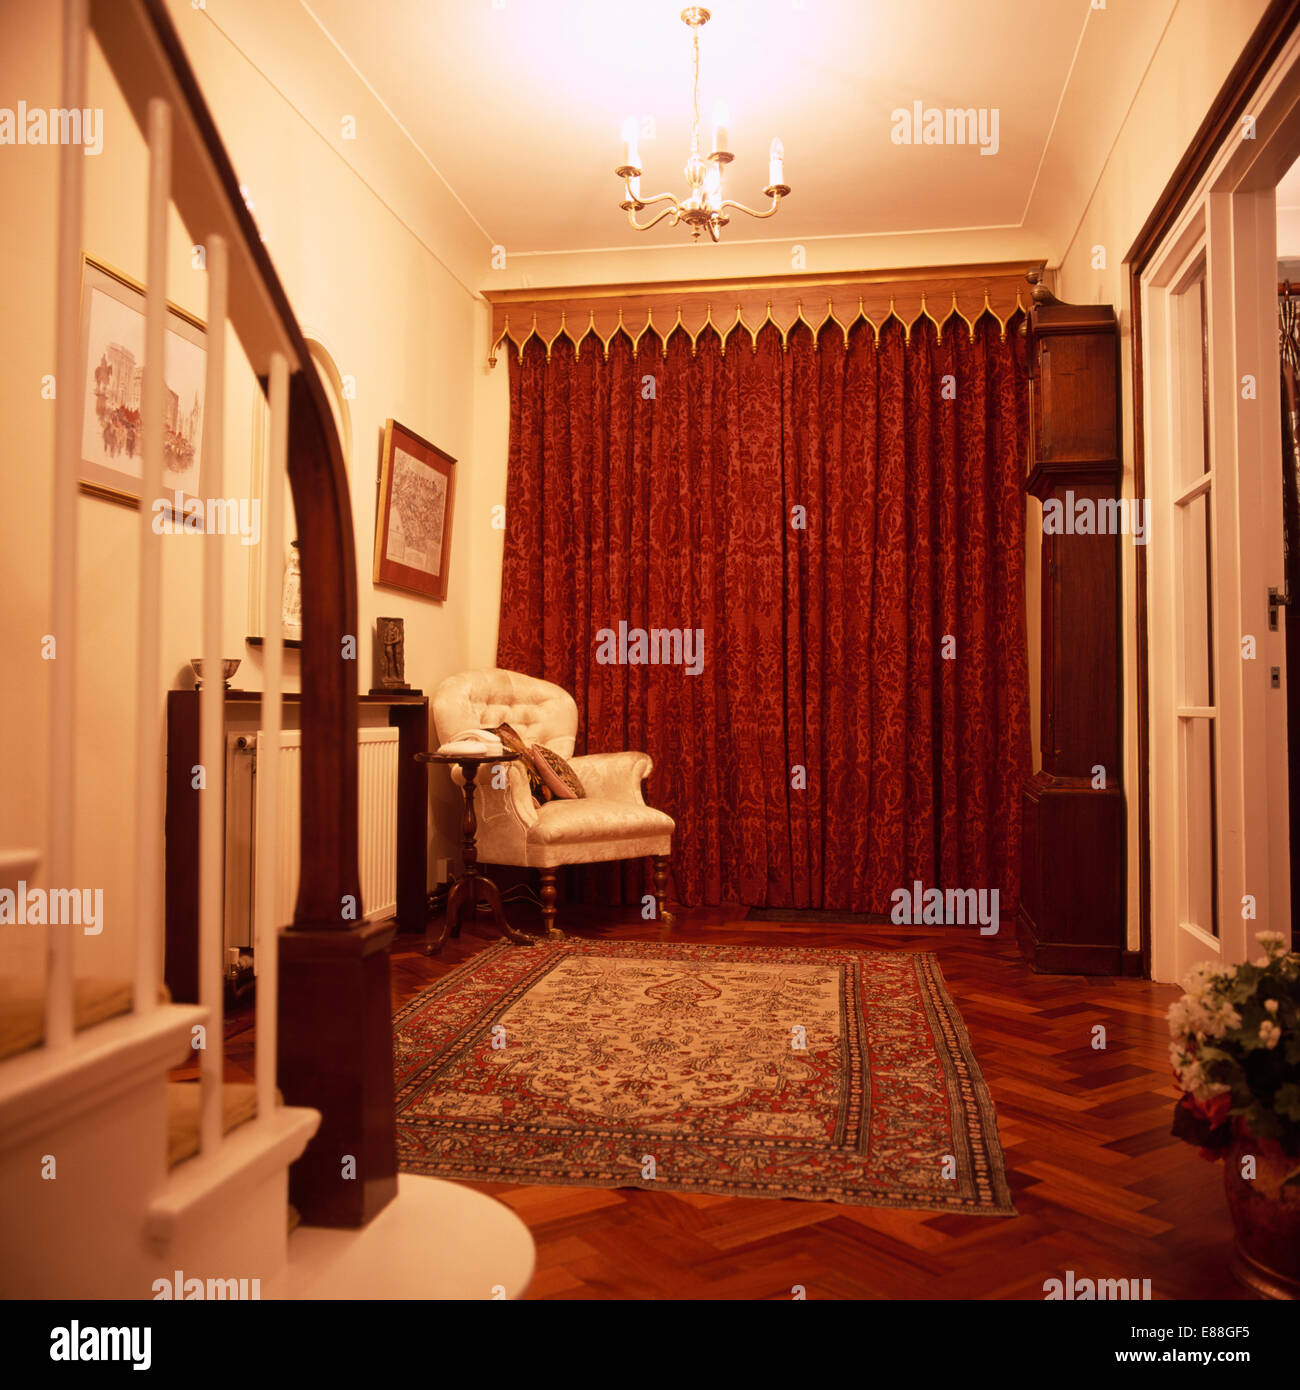 Gothic Wooden Pelmet Above Red Curtains In Traditional Hall With Armchair And Large Rug On Parquet Floor